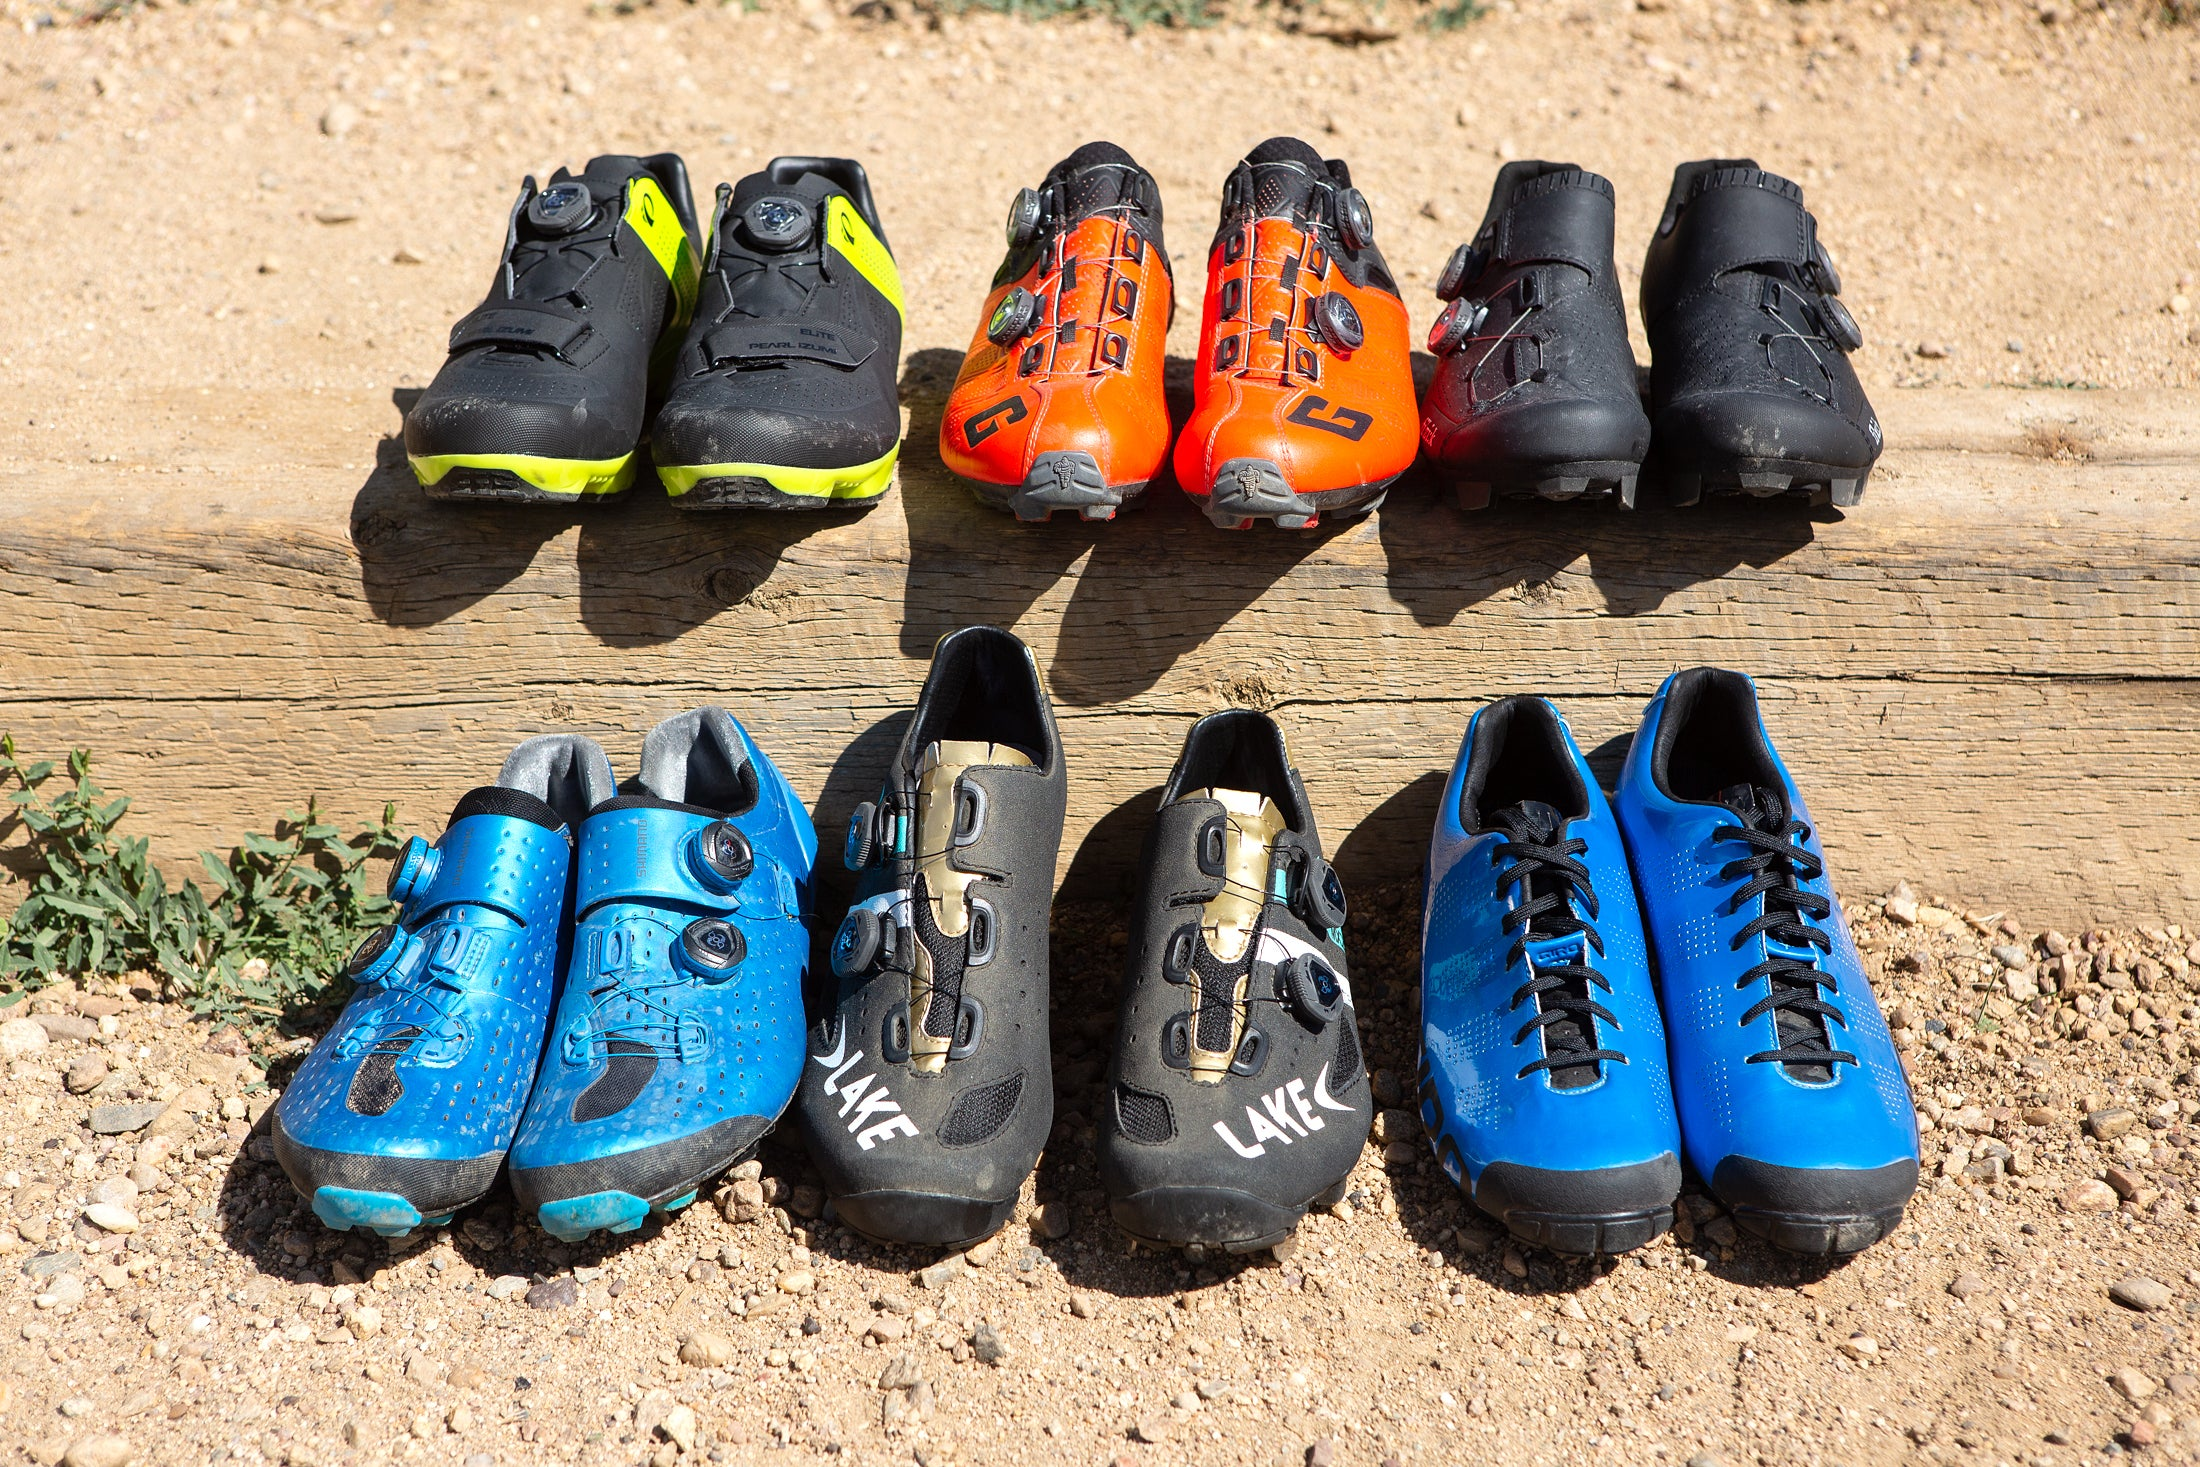 bc89968e4c Reviewed: Six cyclocross shoes to take on the mud – VeloNews.com